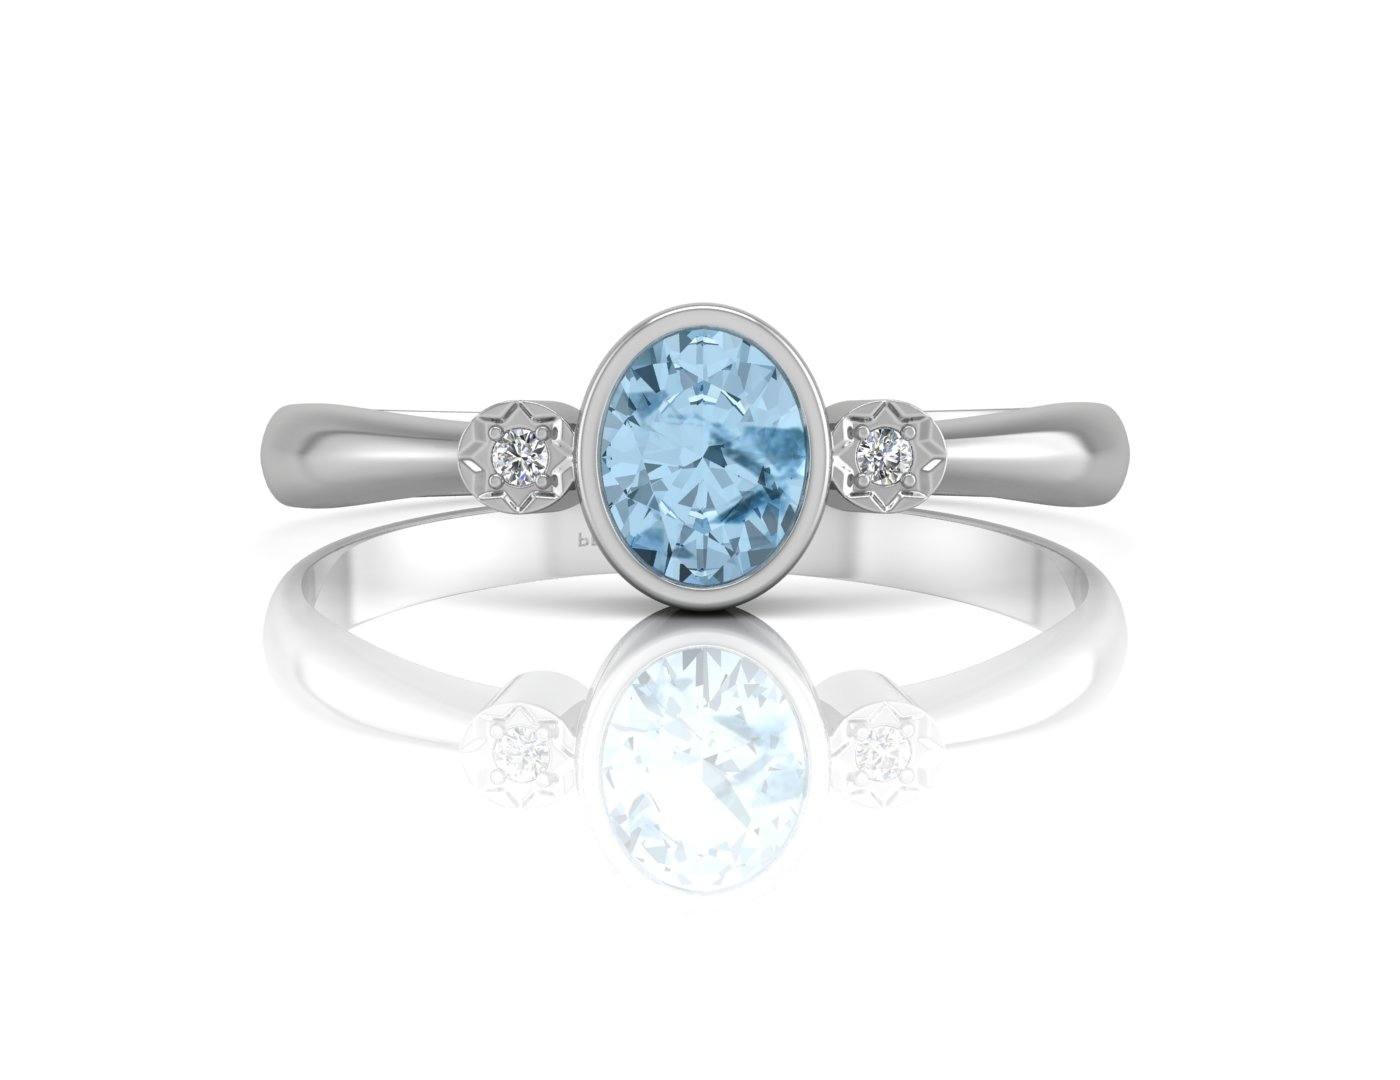 9ct White Gold Shoulder Set Diamond And Blue Topaz Ring - Image 4 of 5